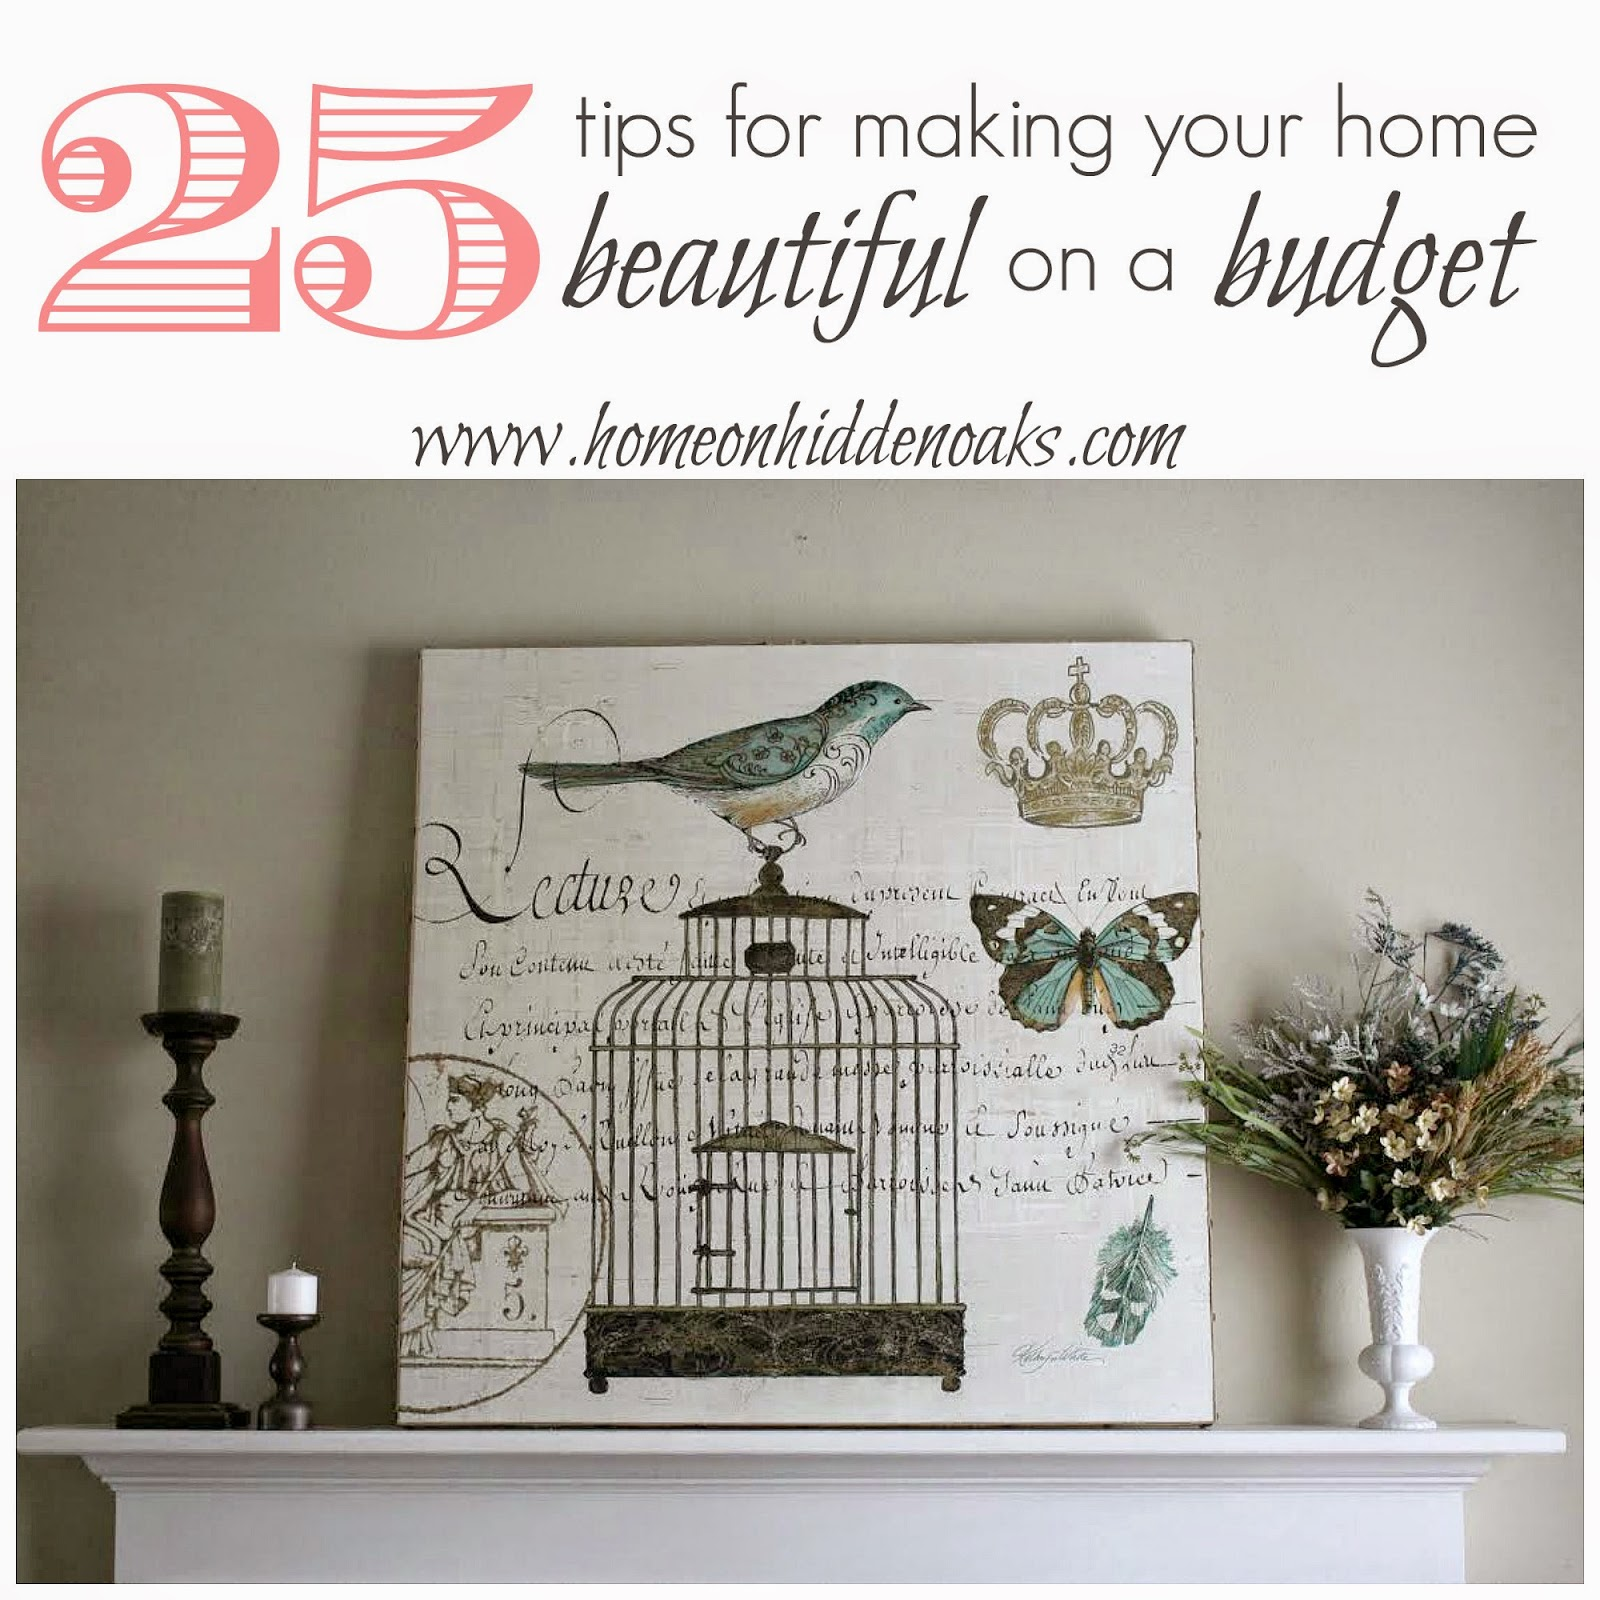 Home On Hidden Oaks 25 Tips To Make Your Home Beautiful